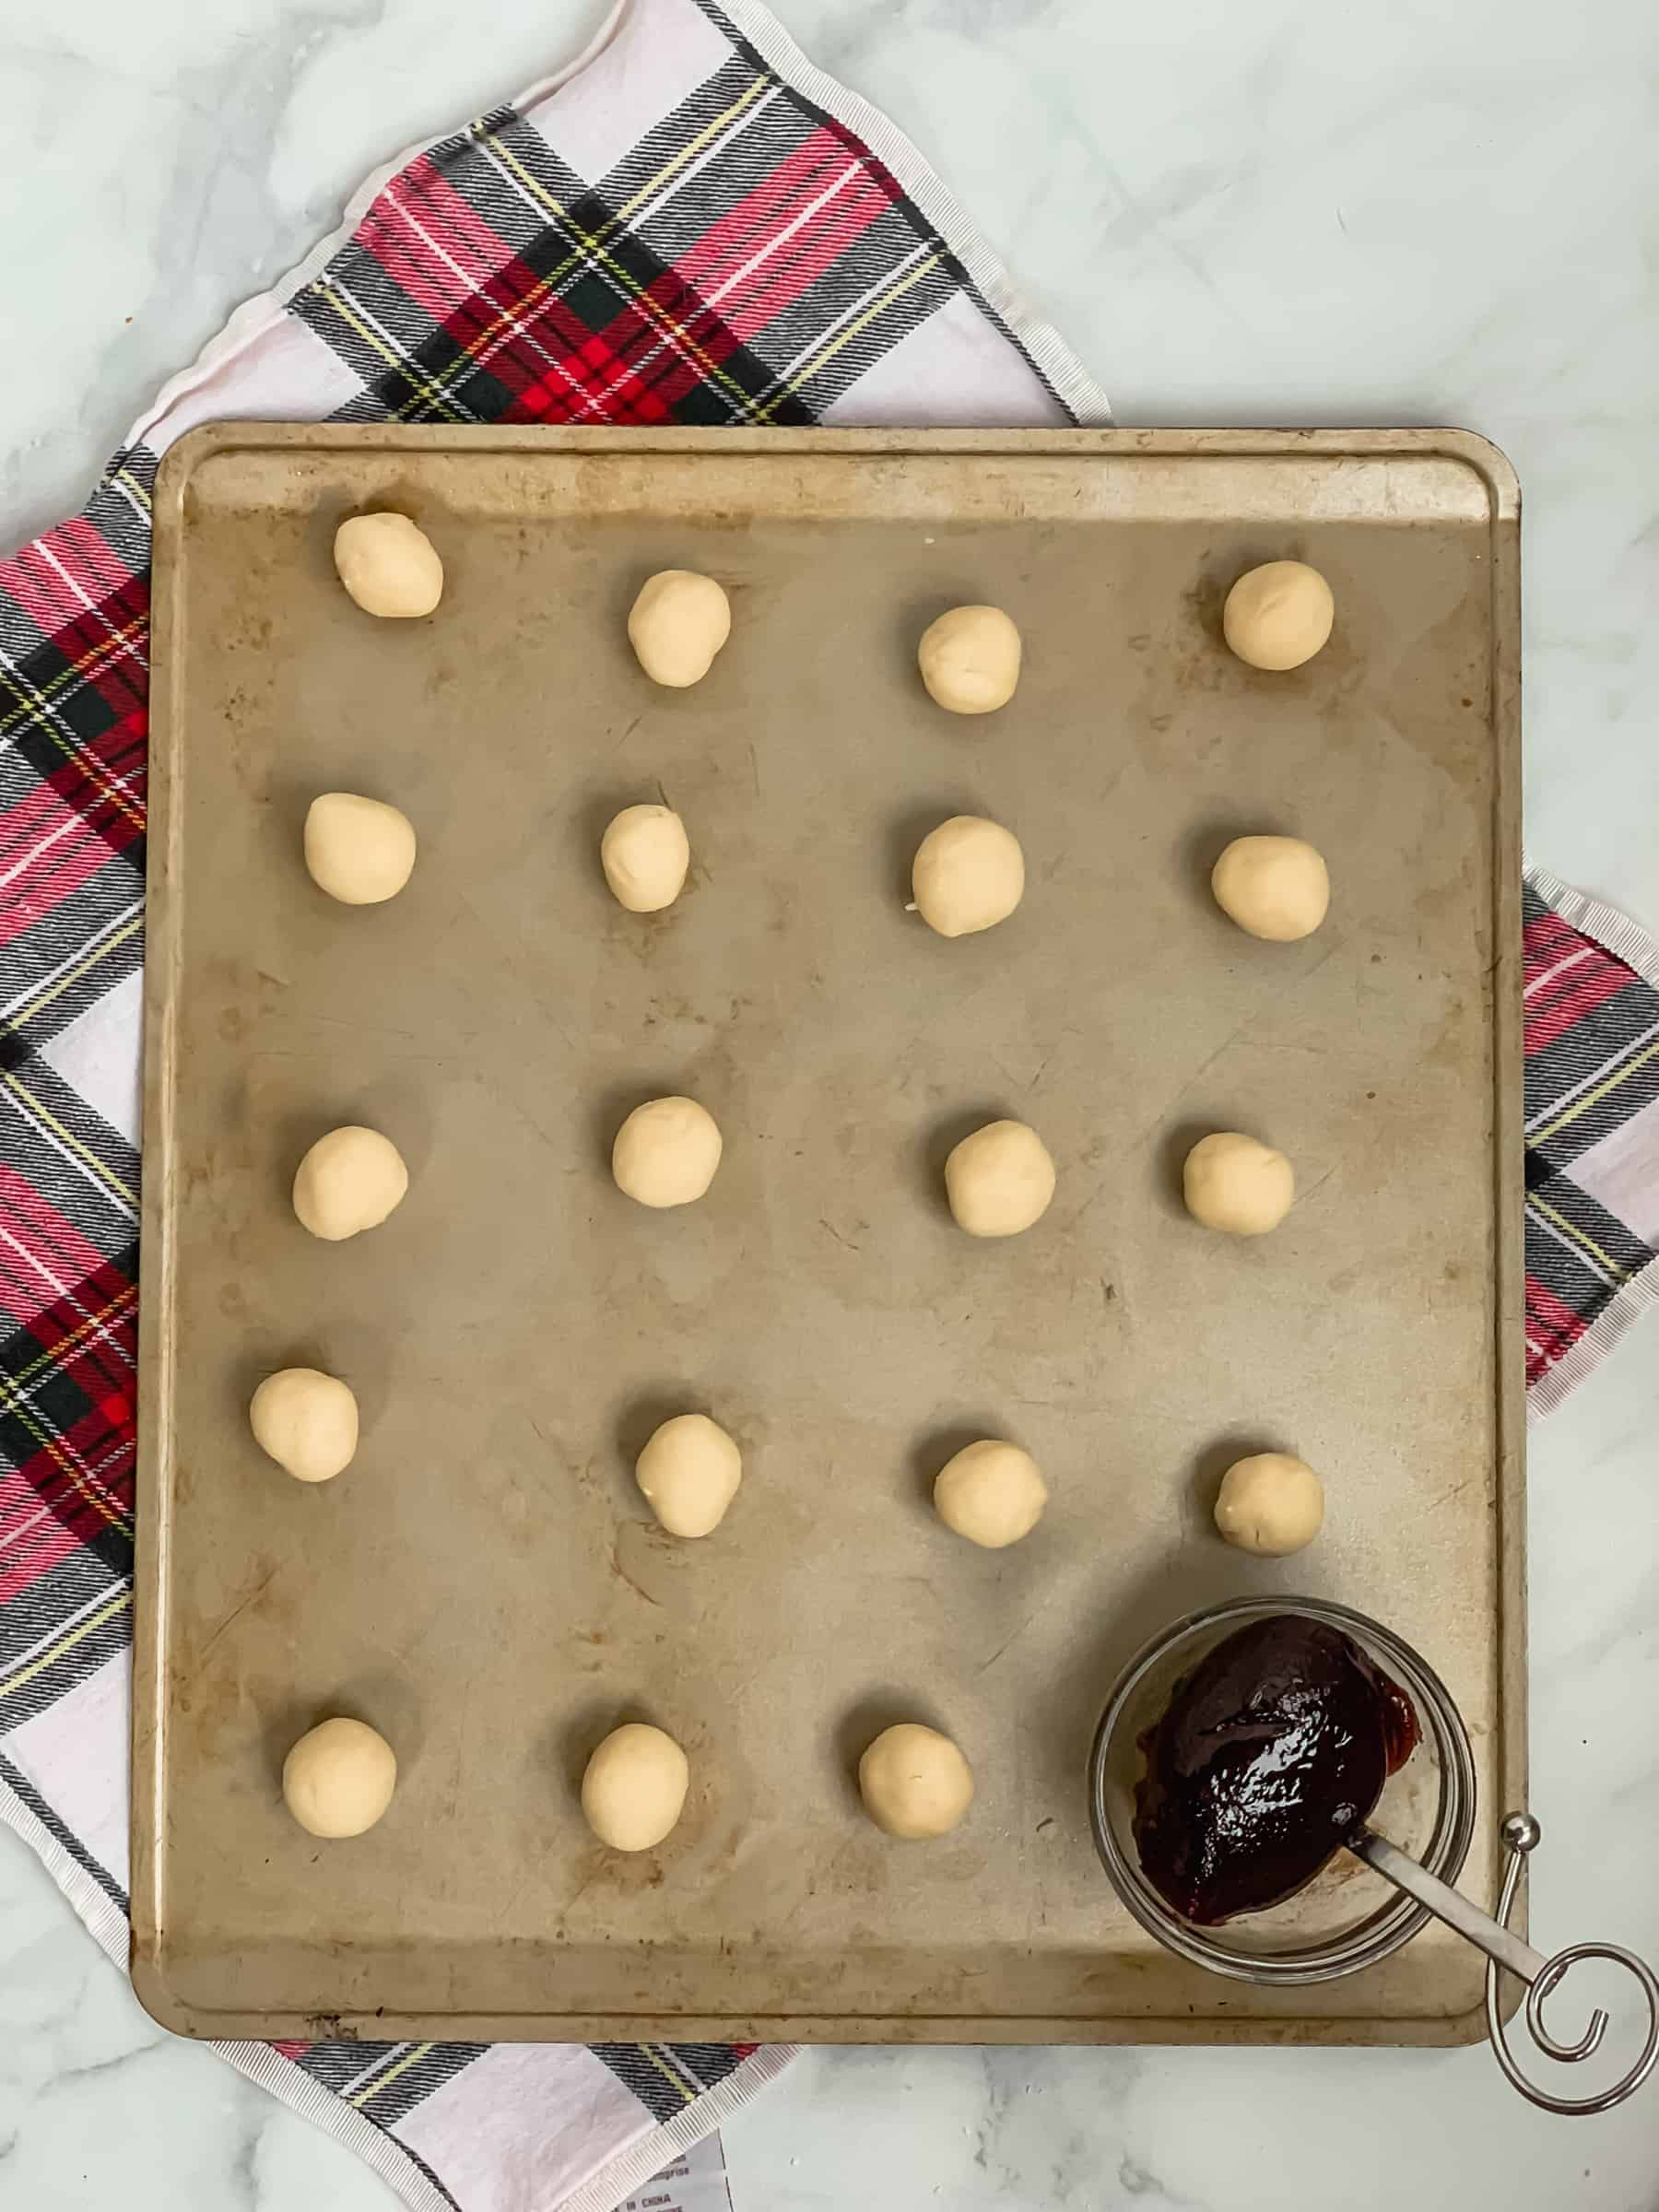 balls of cookie dough on a baking sheet with a bowl of raspberry jam in the lower corner all on top of a white and red plaid napkin and a marble background